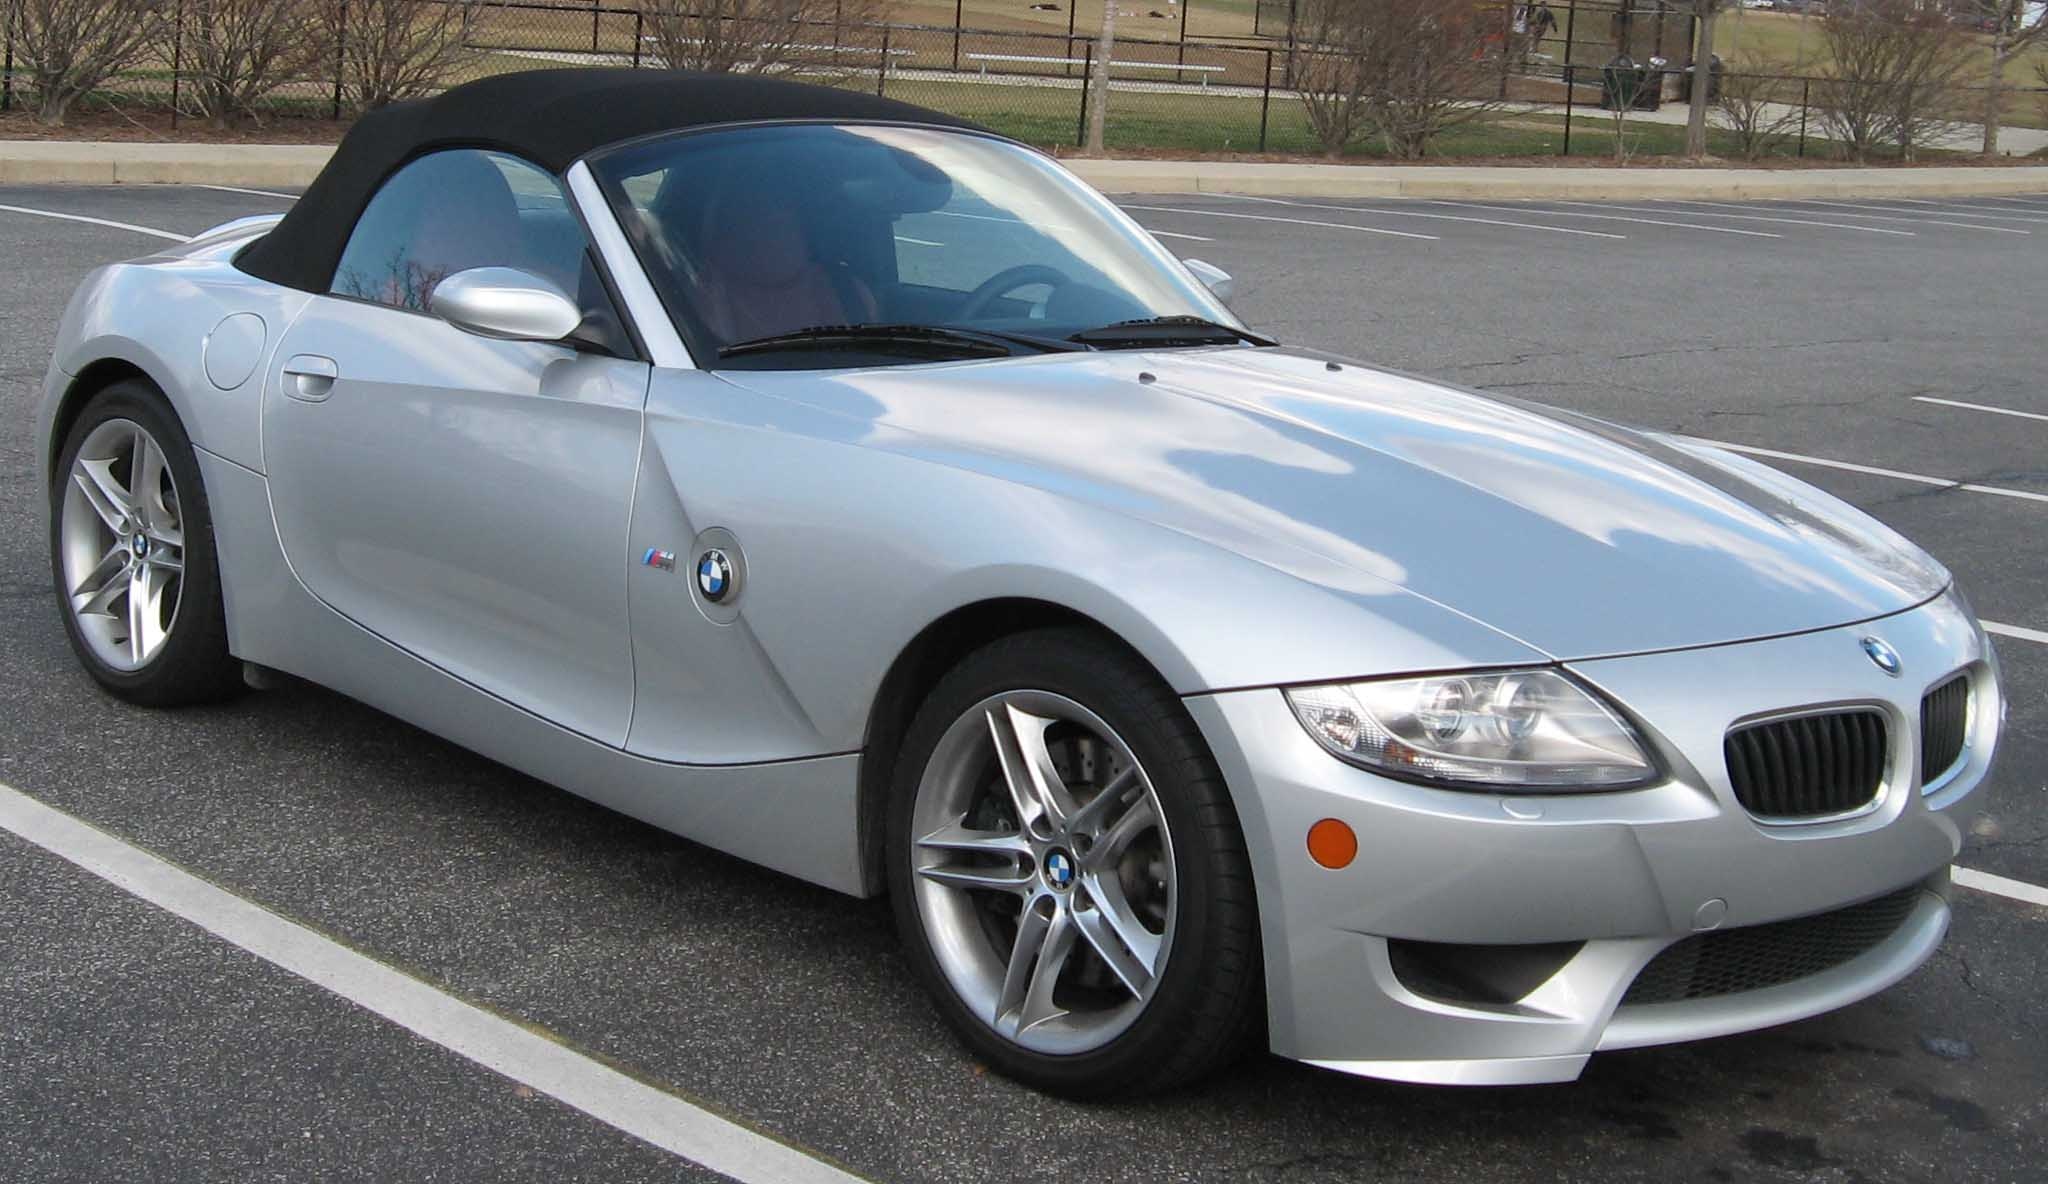 file:bmw z4 m 1 - wikimedia commons